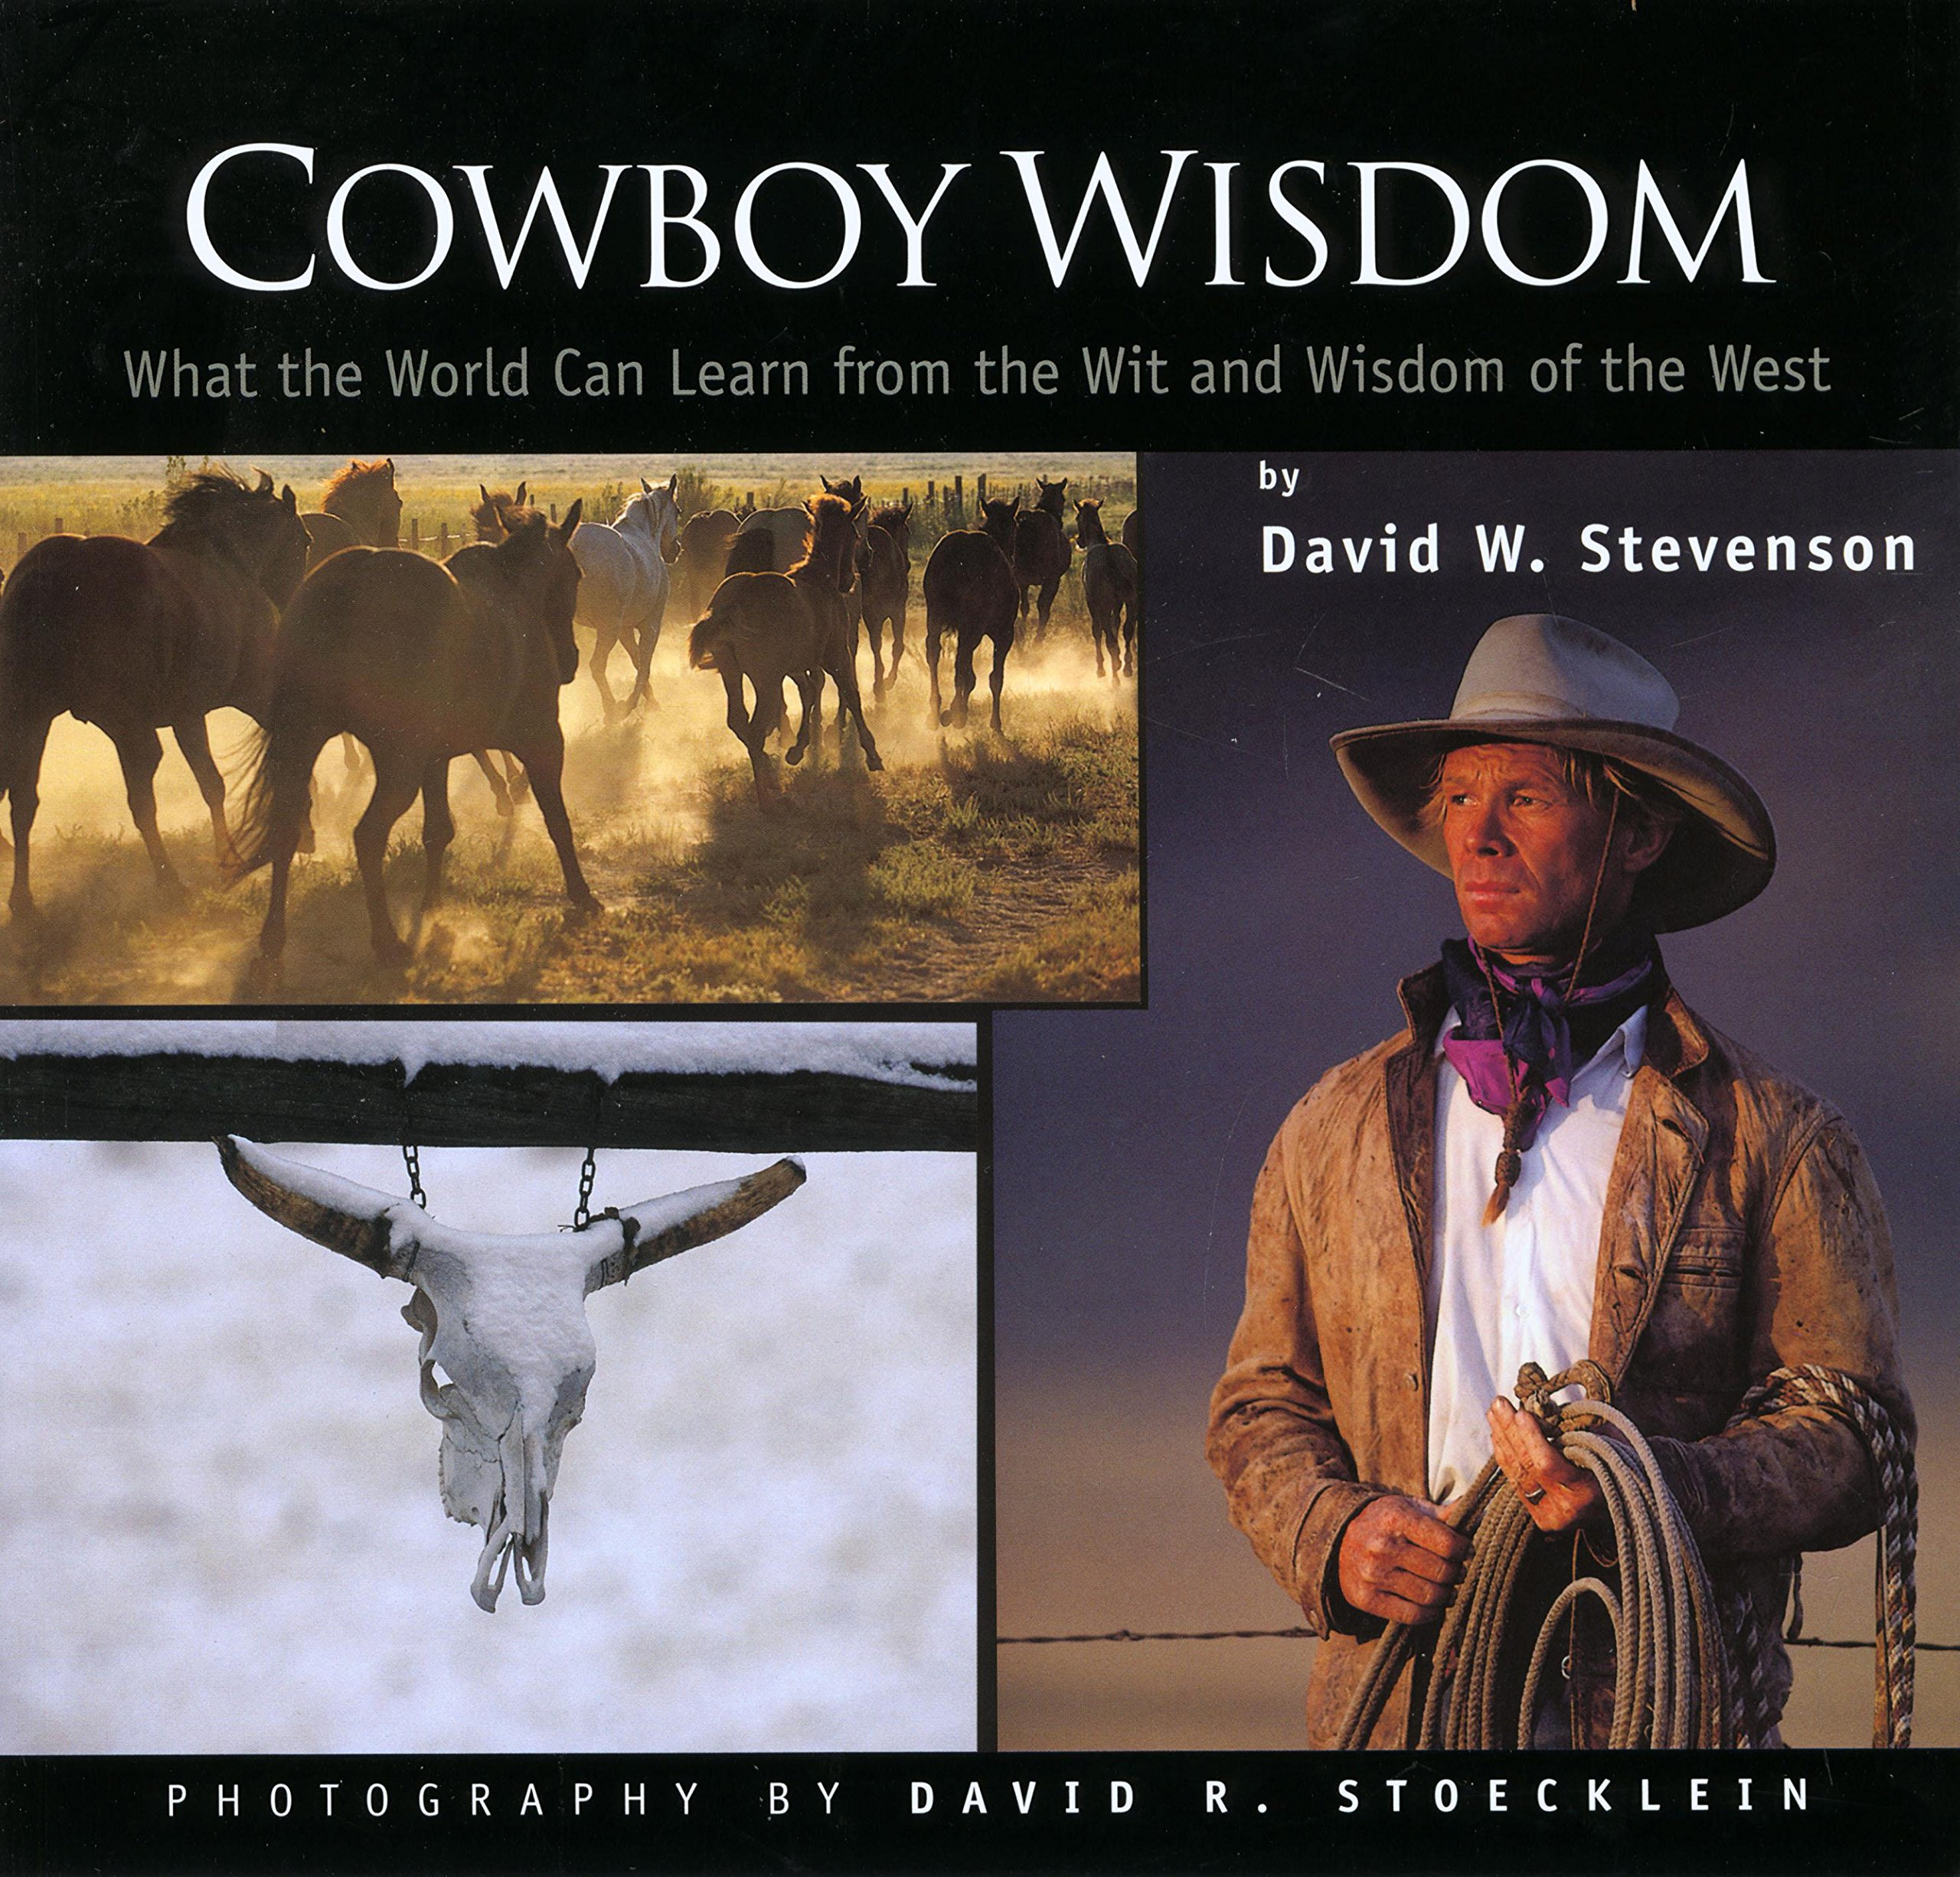 Cowboy Wisdom David Stevenson University Of St Andrews David R